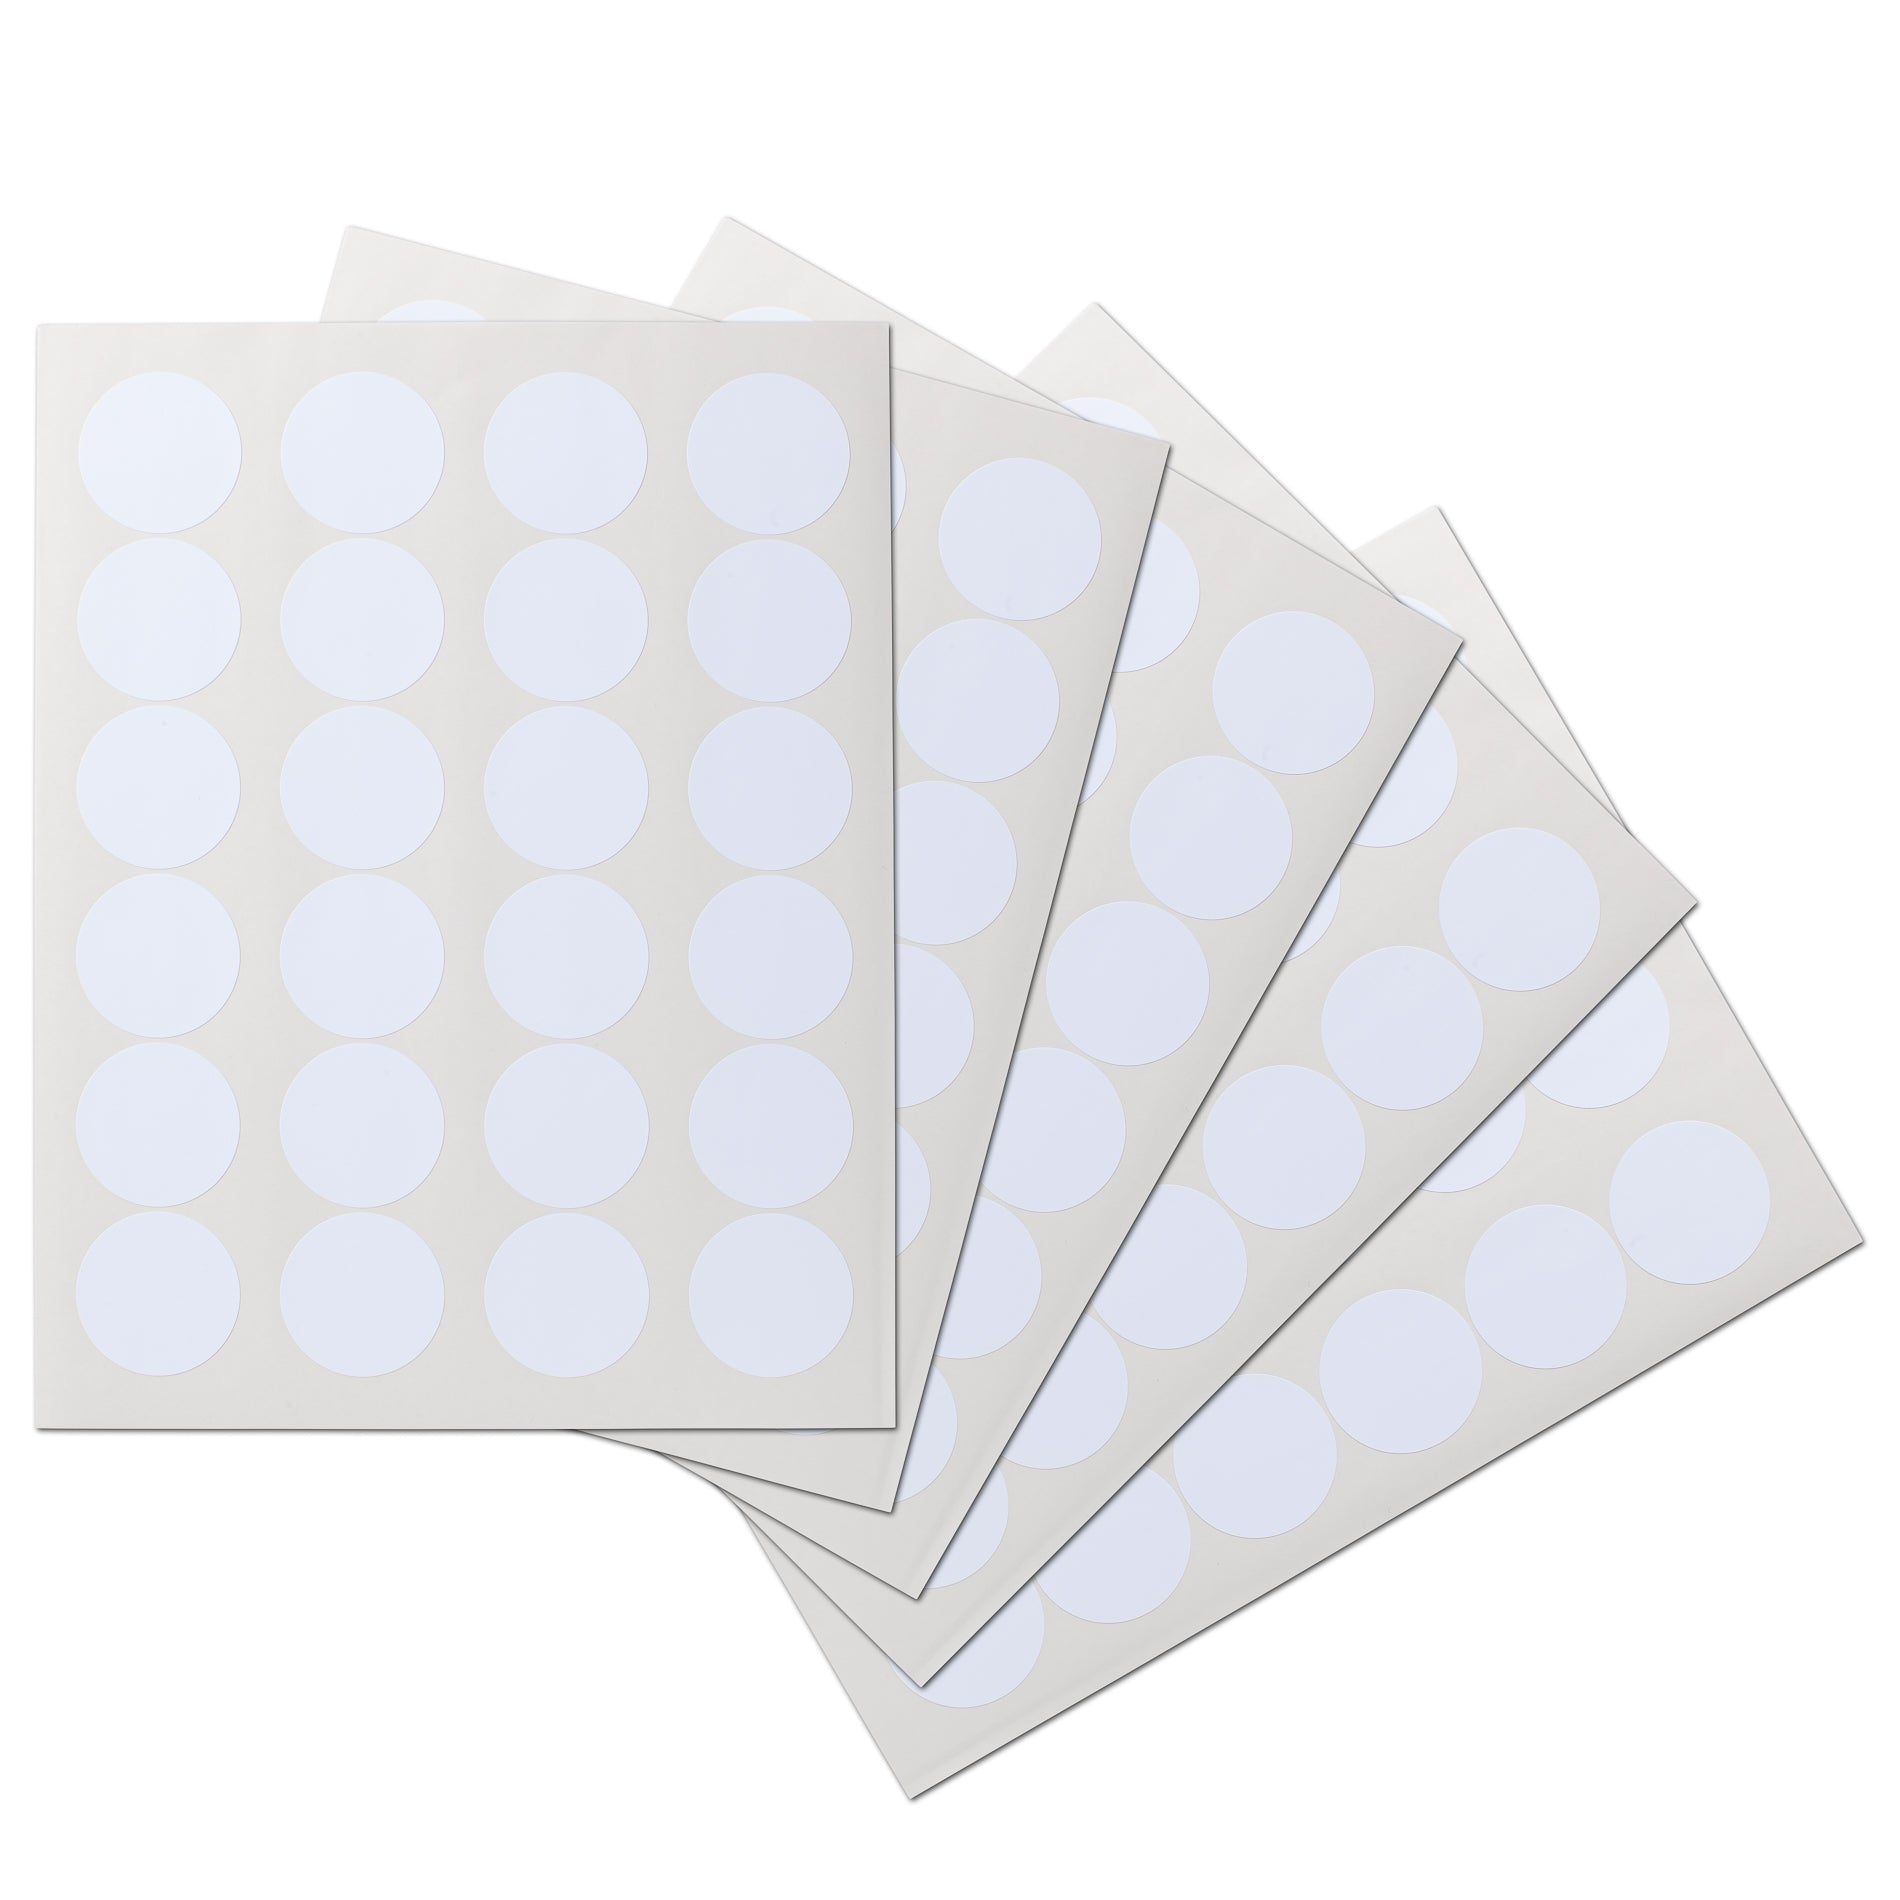 1.7 inch Circle Waterproof Labels